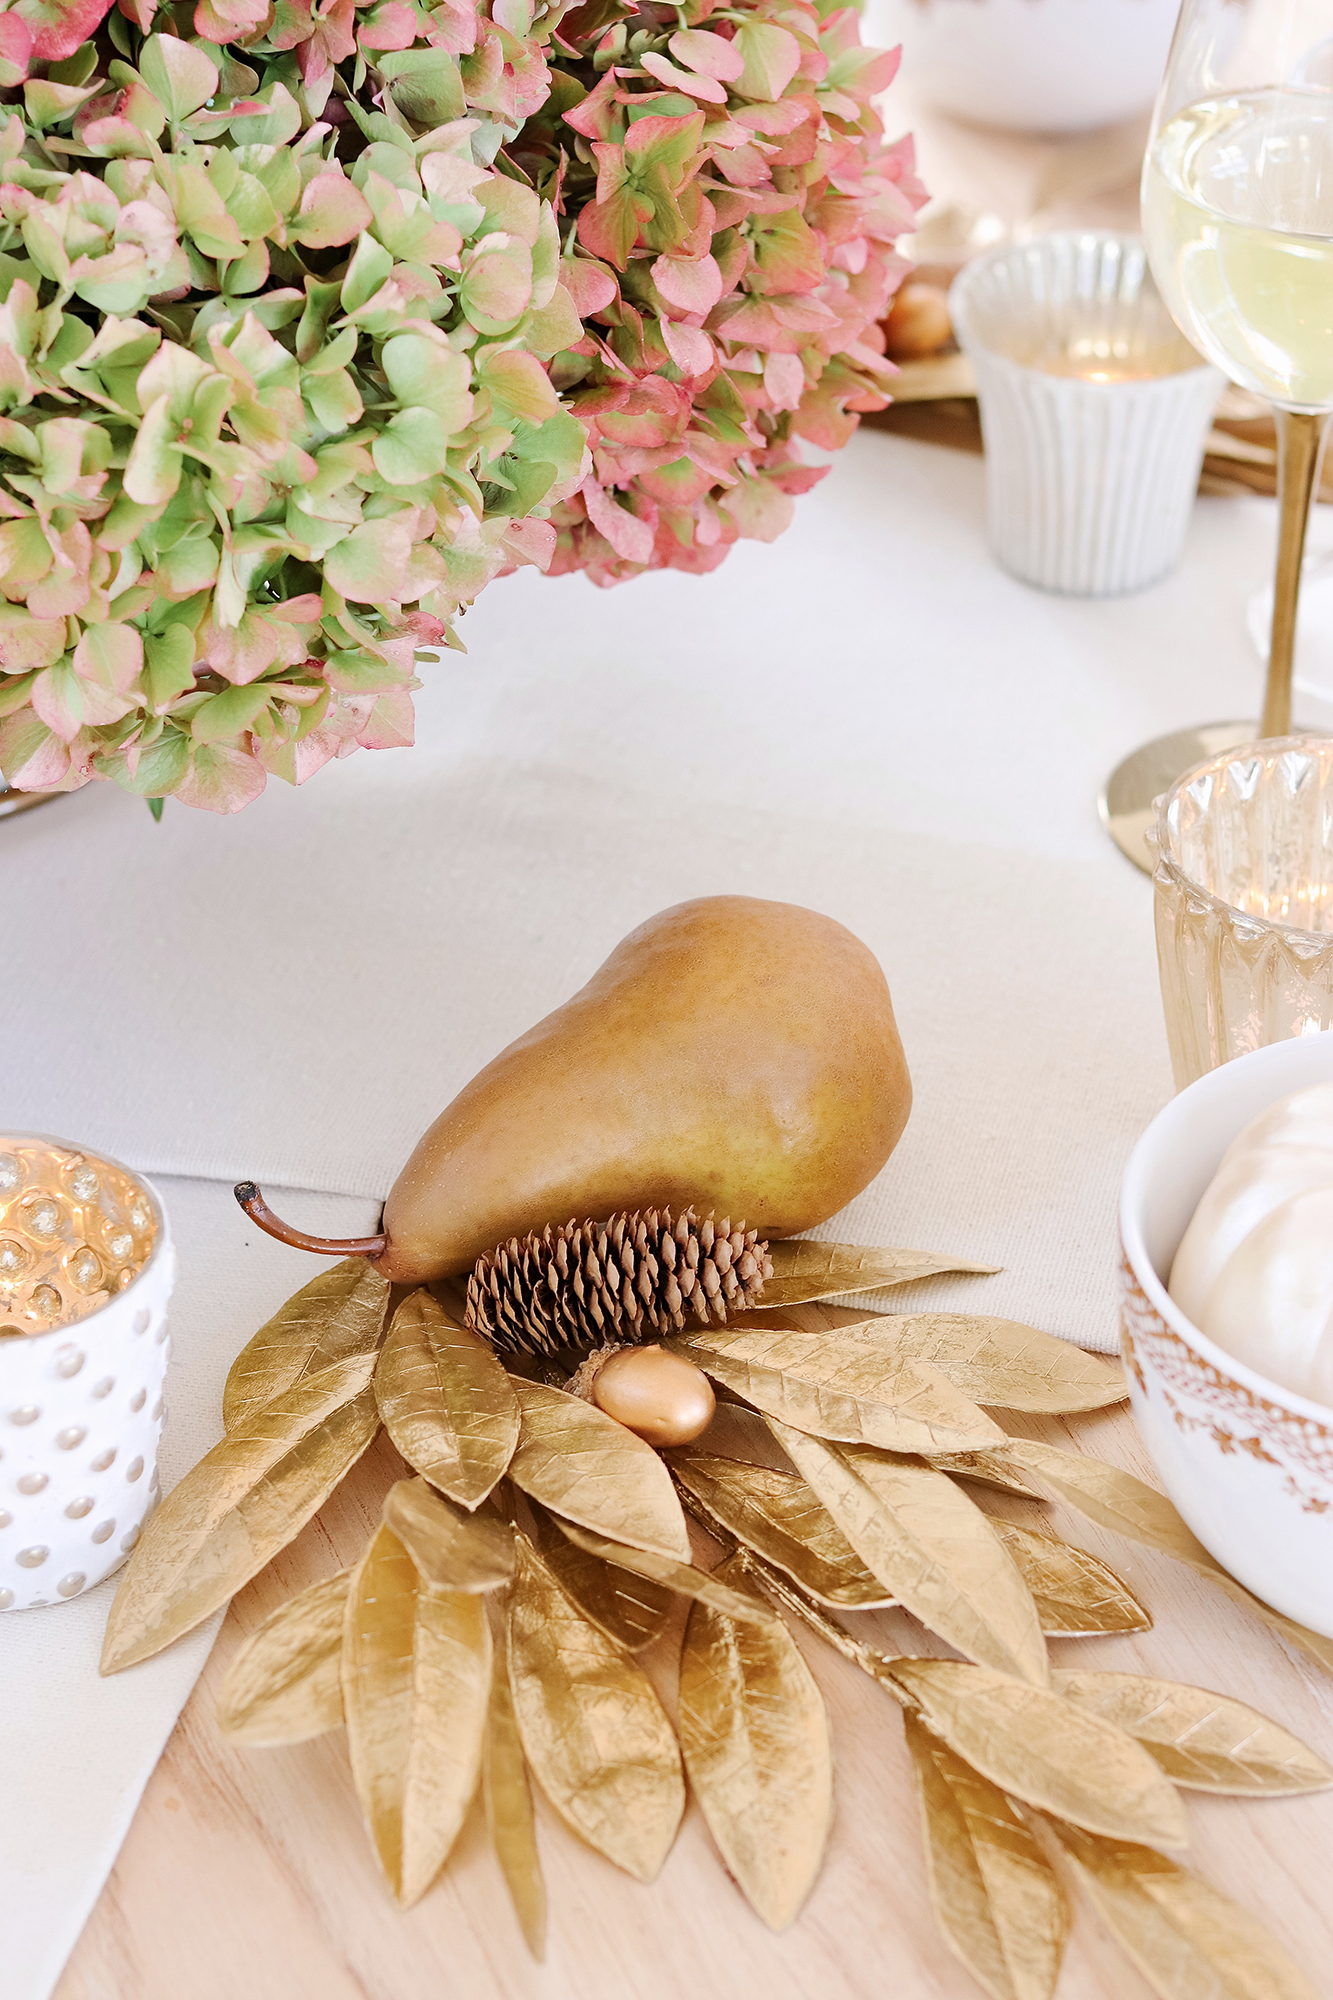 Thanksgiving Dinner Tablescape Ideas using Martha Stewart Collection created for Macy's - Affordable, classic, and the best Thanksgiving table ideas!